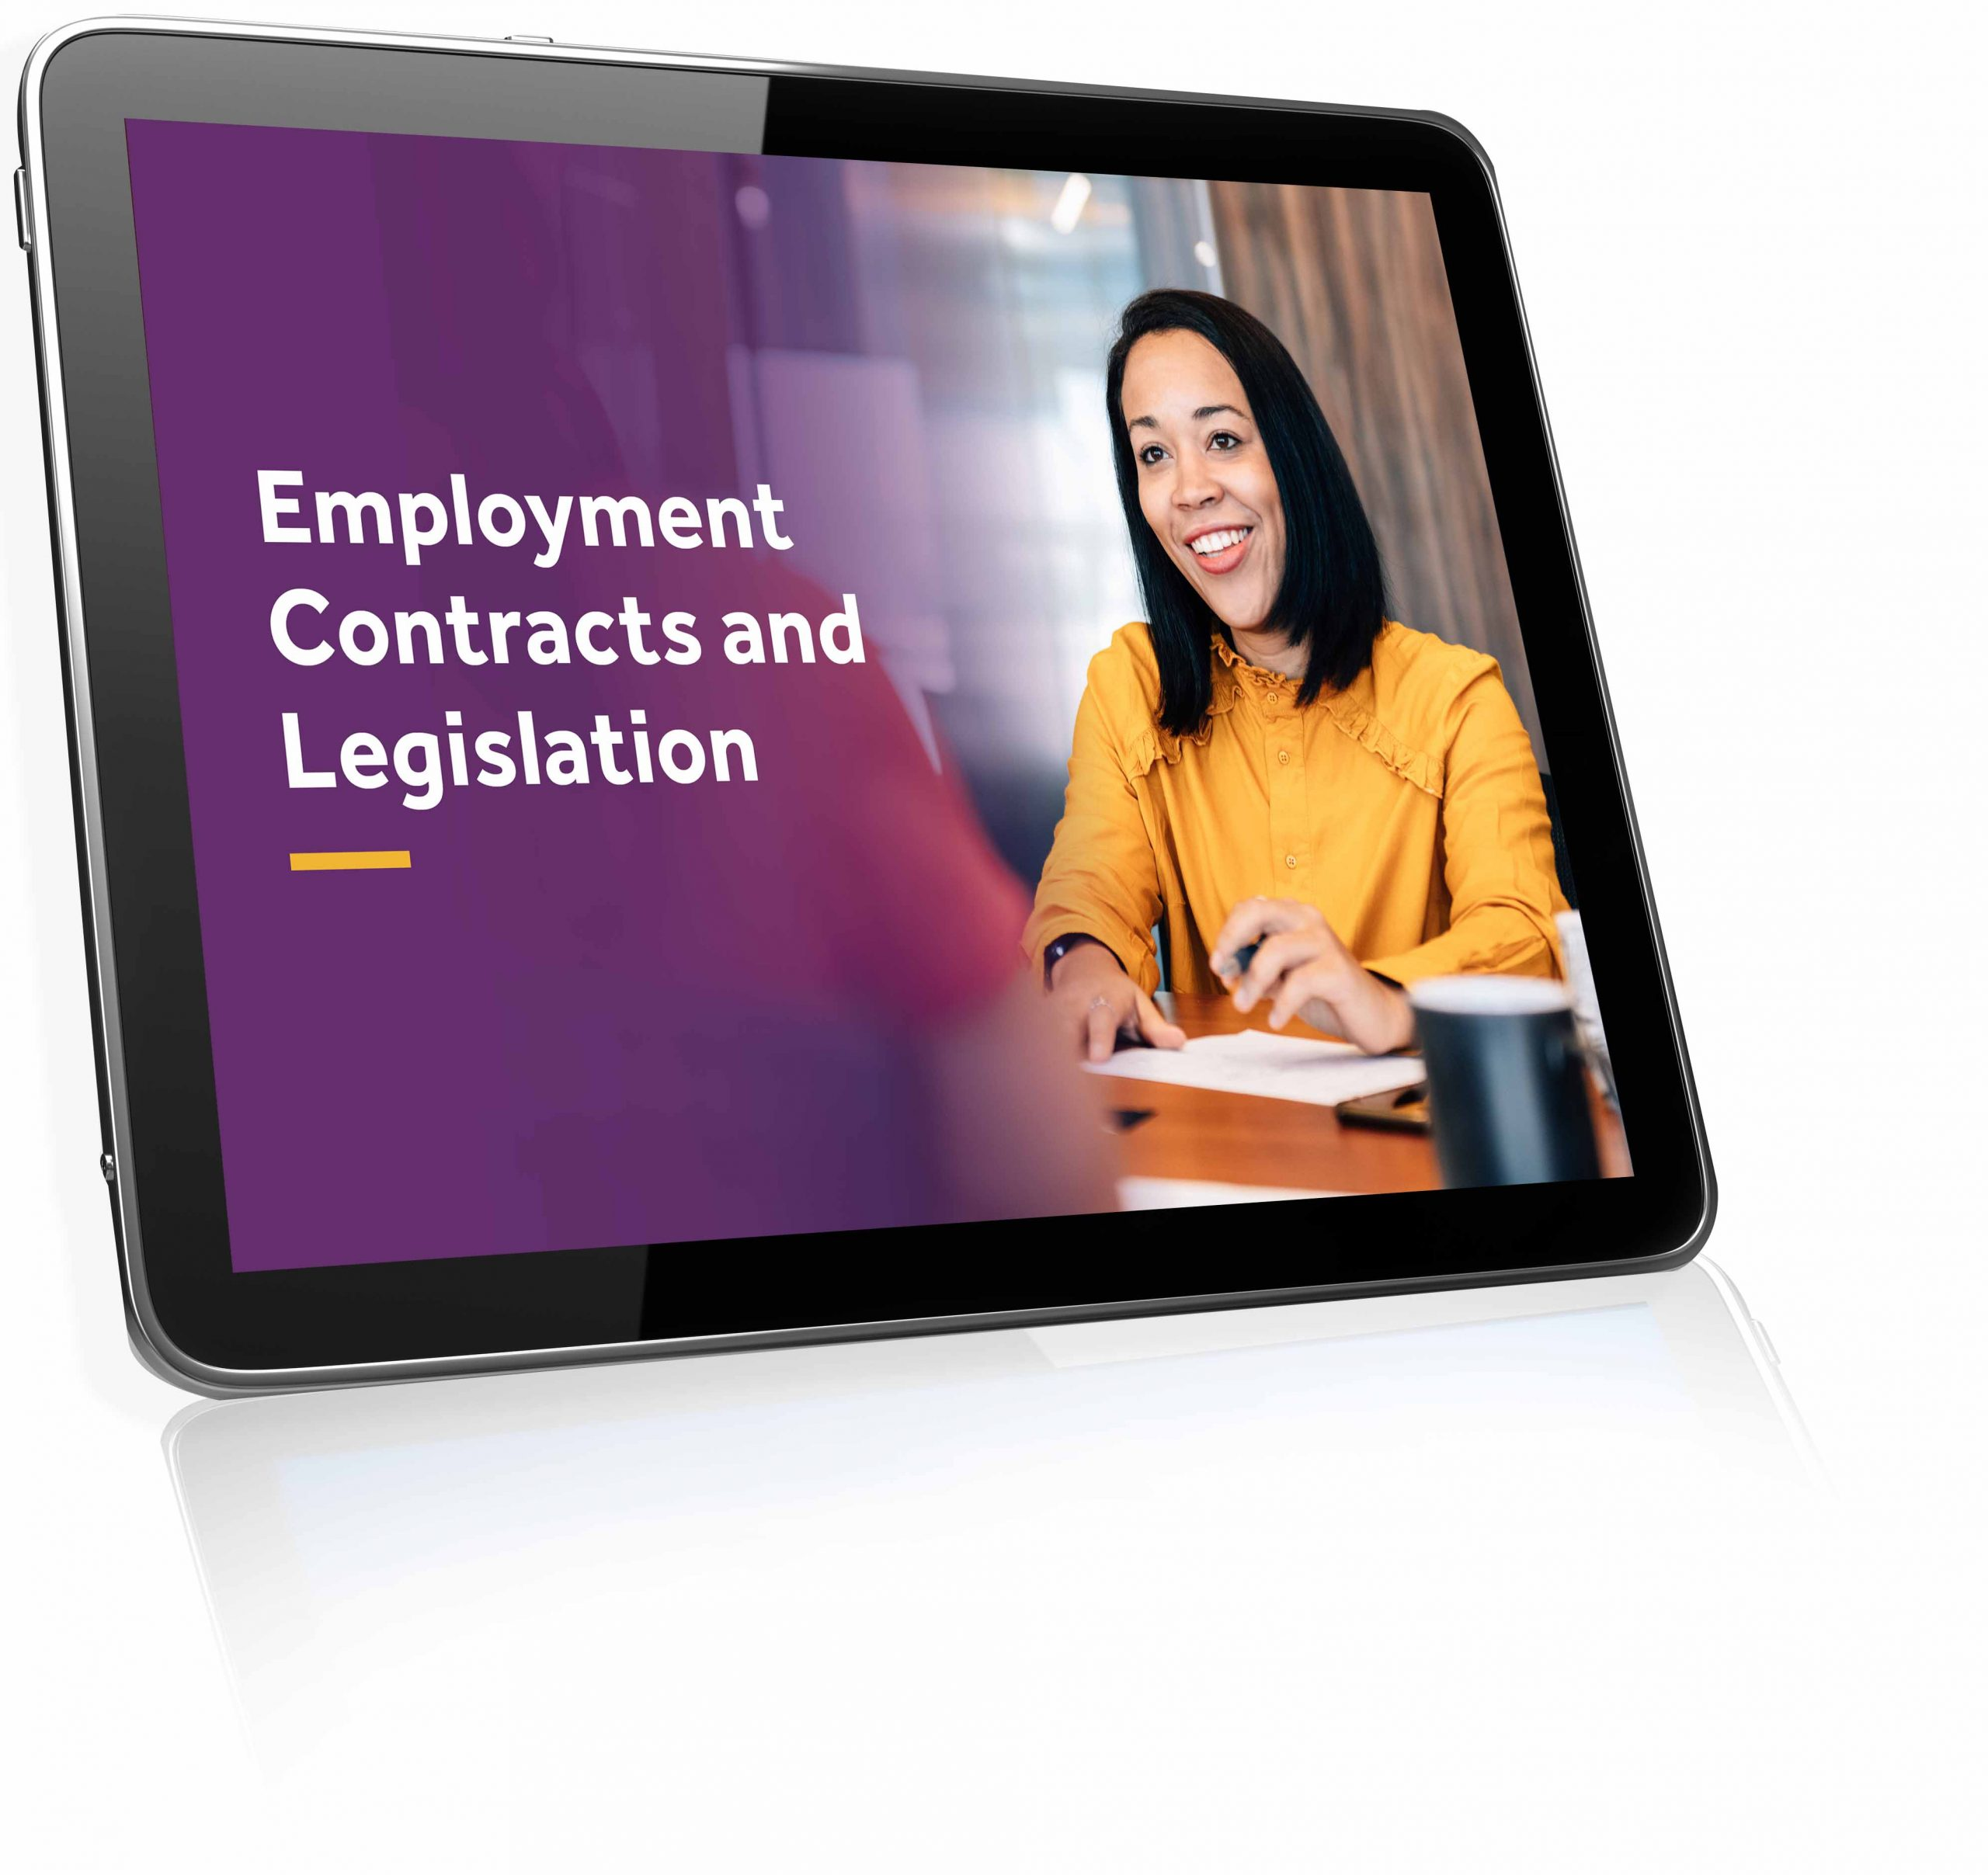 Employment Contracts and Legislation guide